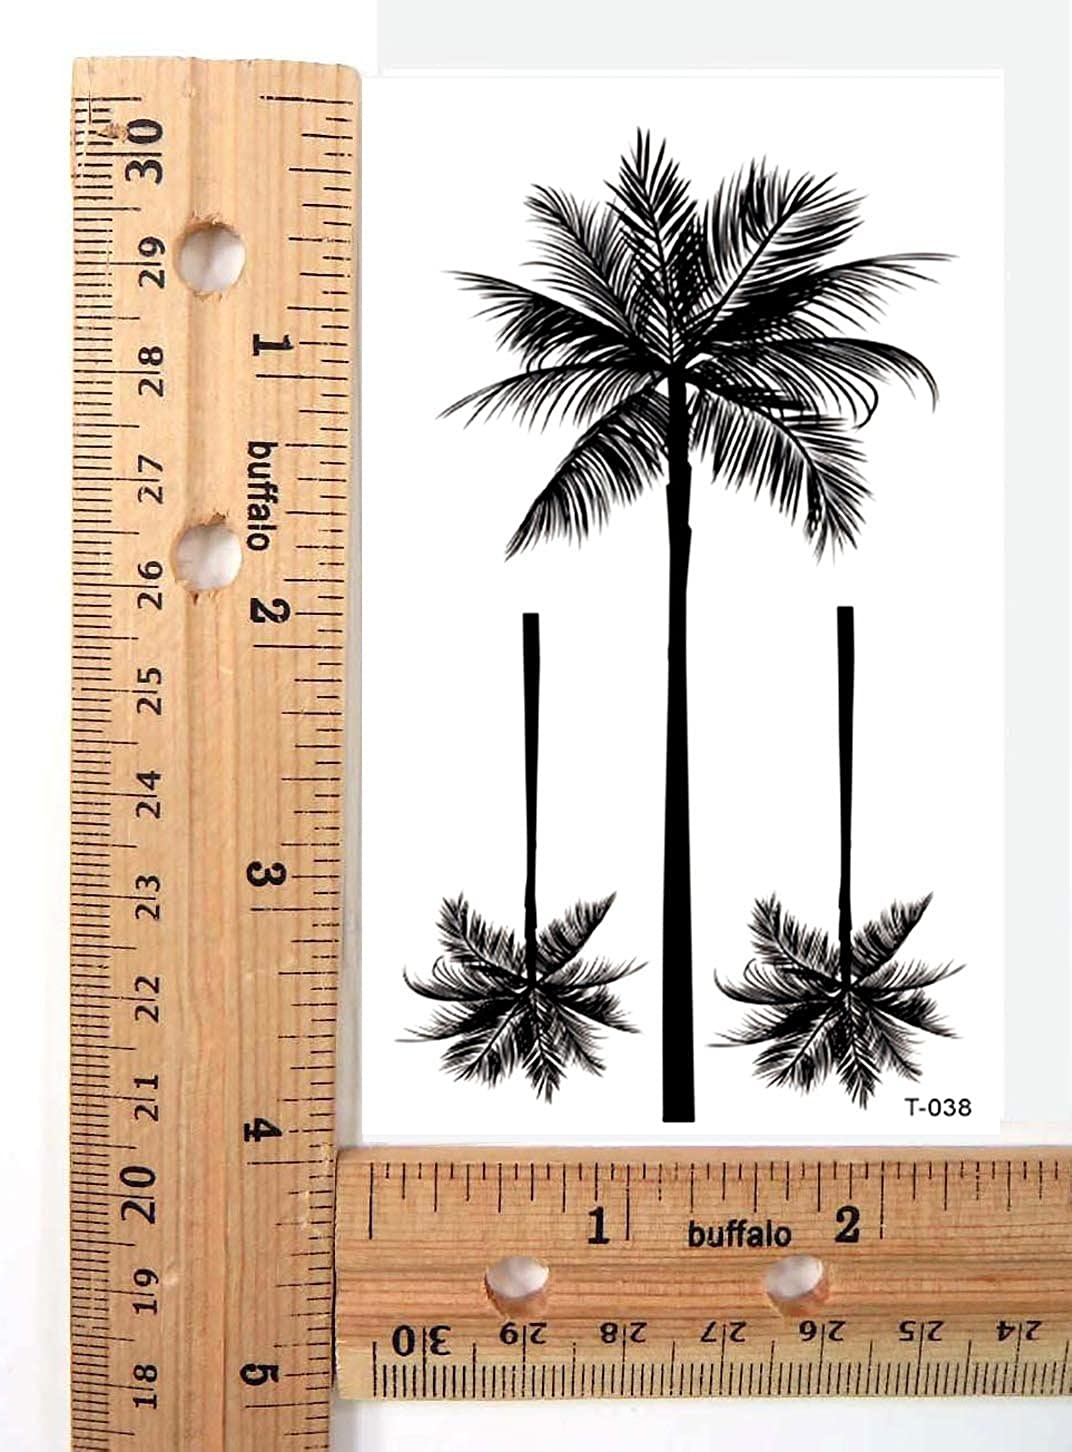 be8c3858c Amazon.com: tropical palm tree temporary tattoo sexy party favor: Clothing